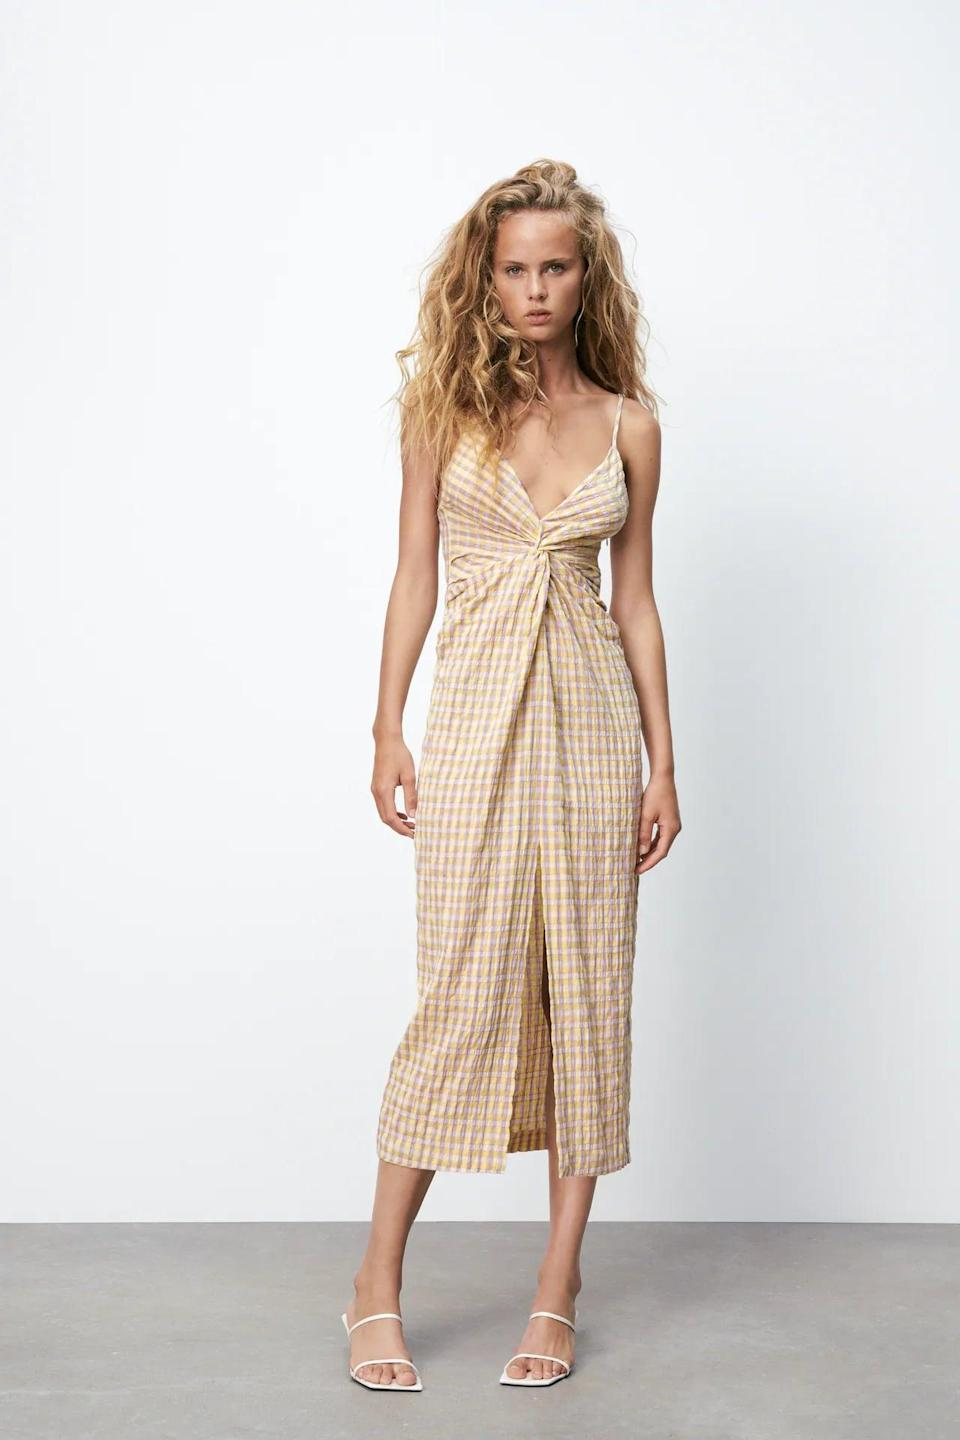 <p>There's something about this <span>Gingham Dress</span> ($50) that makes it ideal for a beachside dinner, where all you have to worry about is when the next cocktail is coming. The color reminds us of the sunset, while the twist detail adds a hint of passion and conveys confidence.</p>